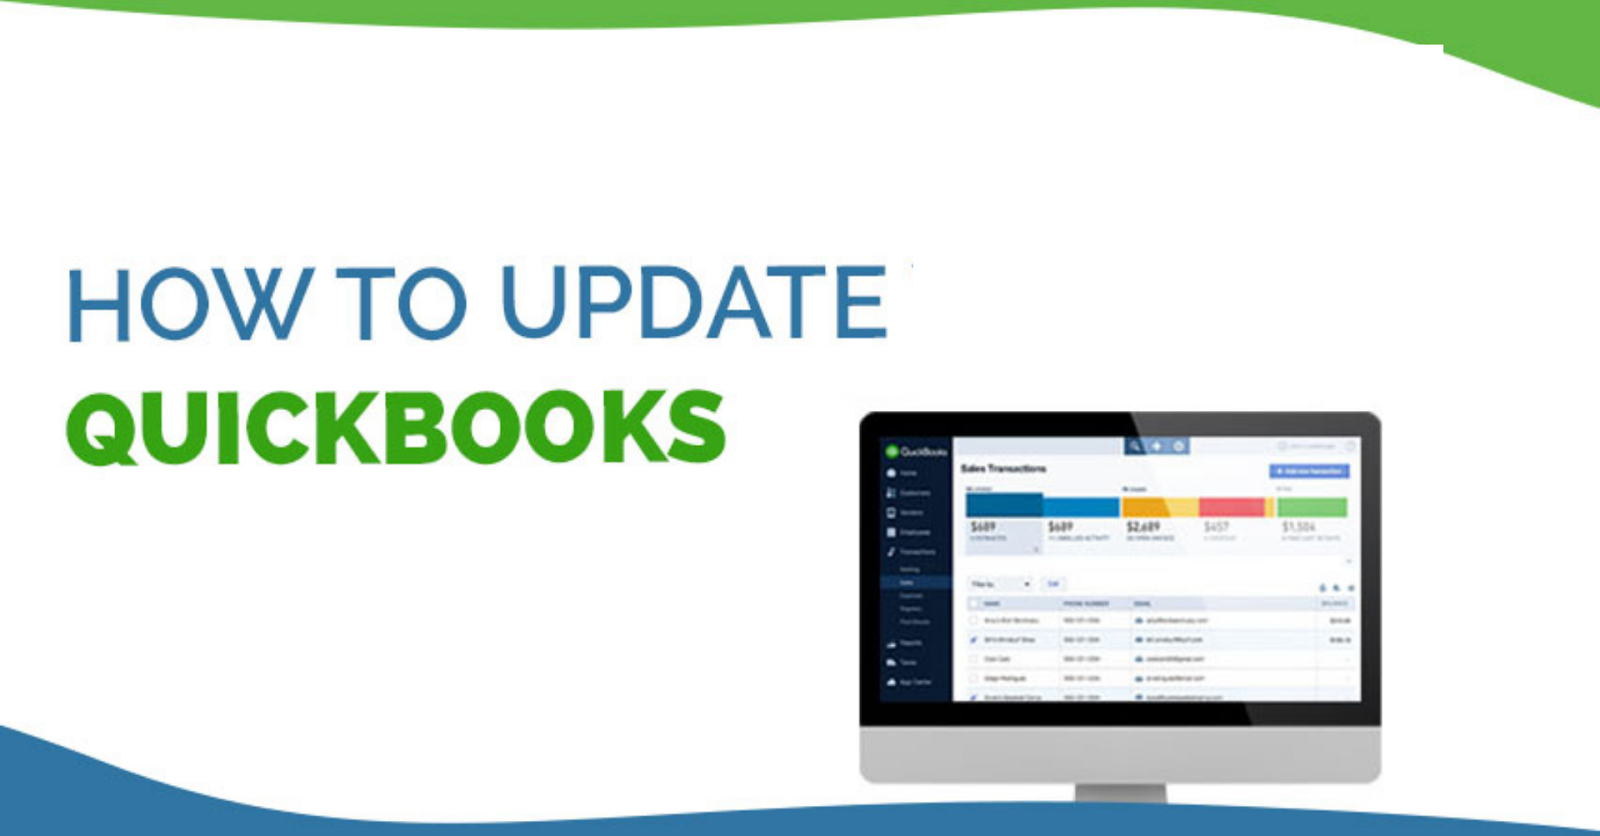 How to update Quickbooks?